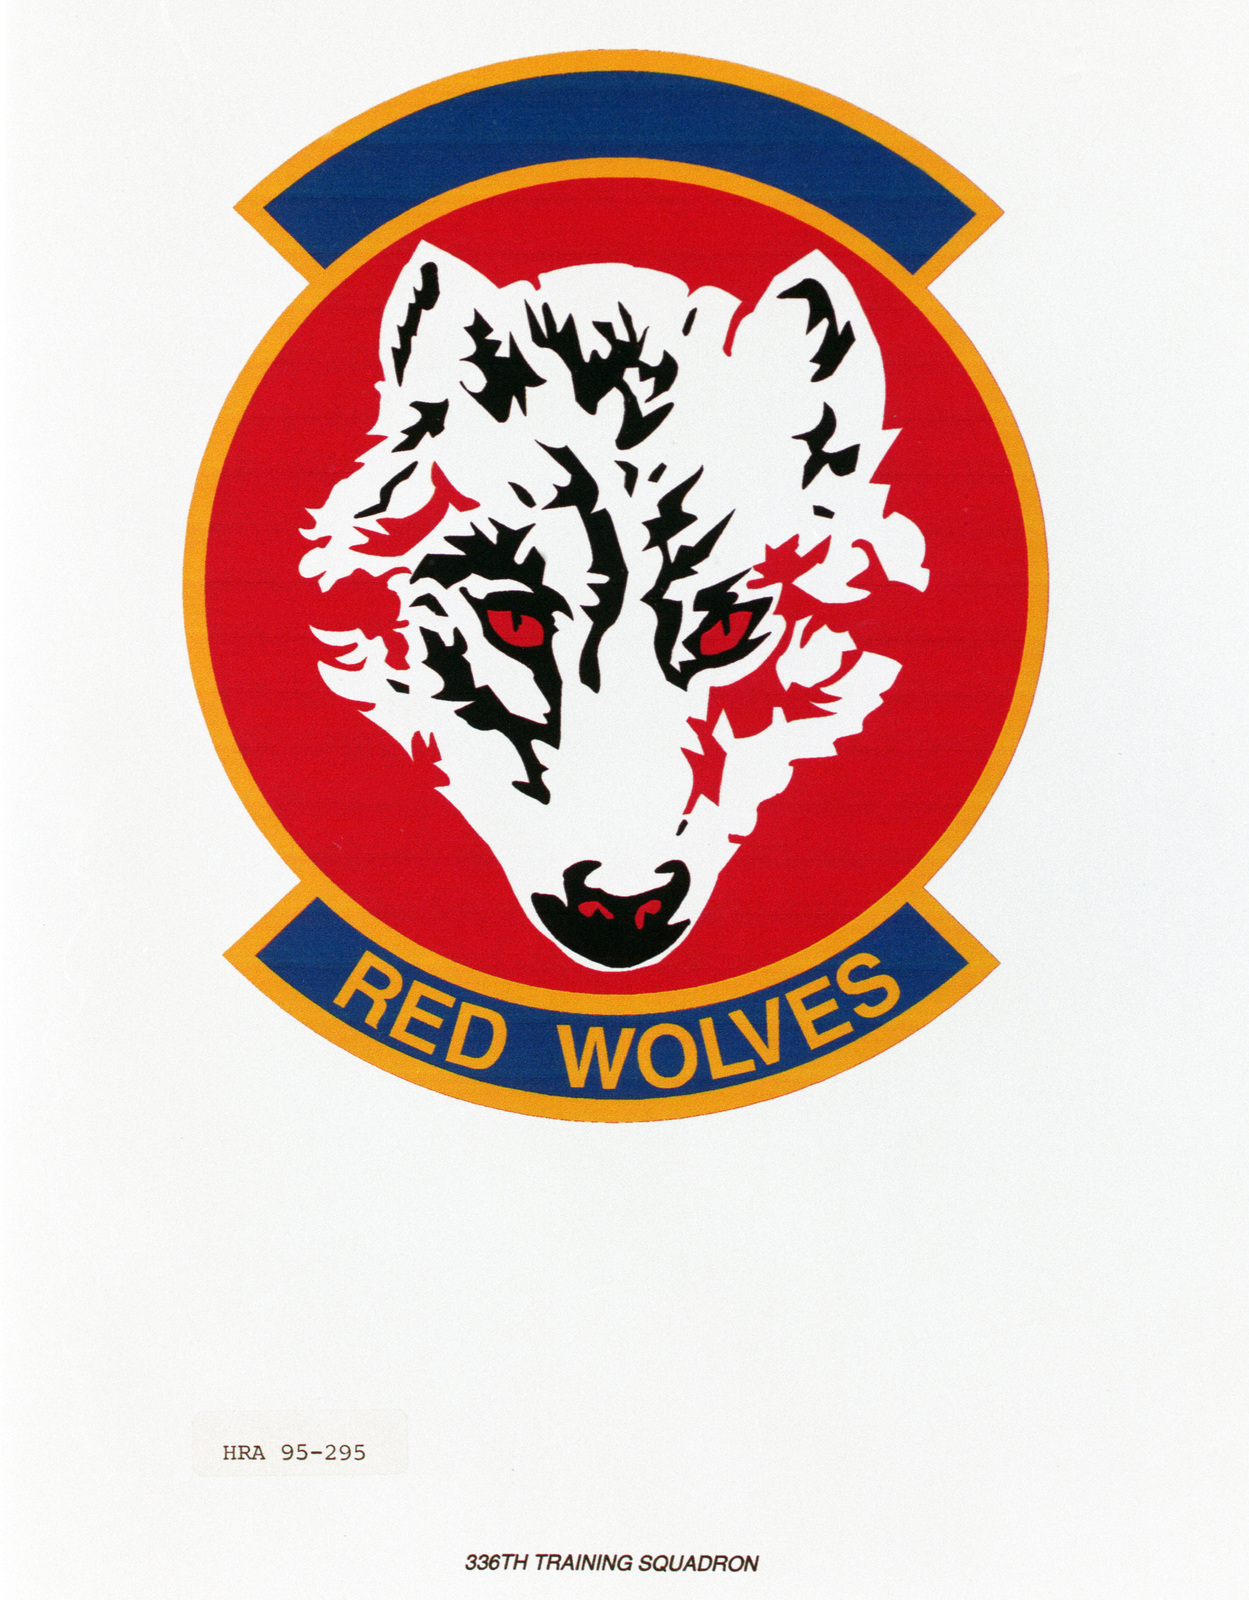 Approved insignia for the 336th Training Squadron Exact date Shot Unknown